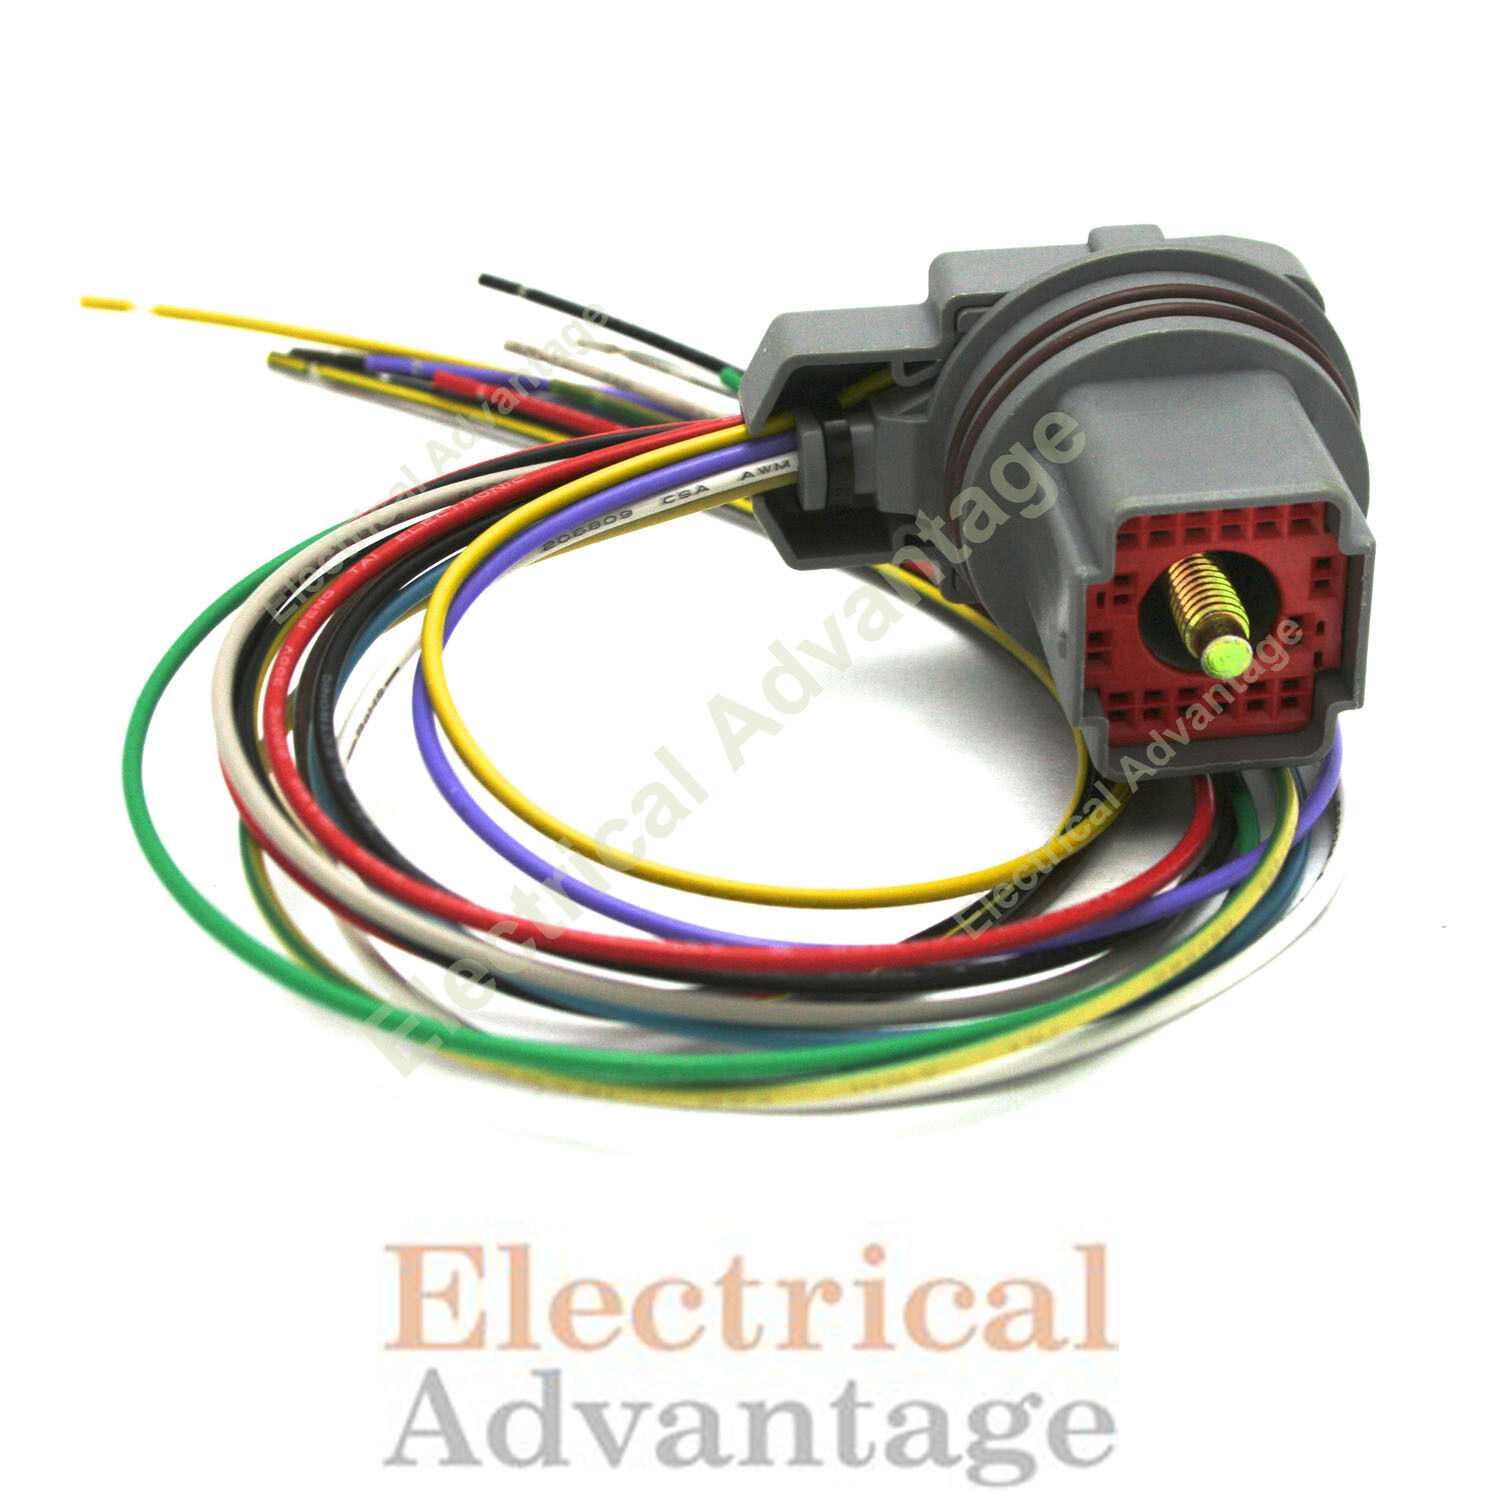 5r55w Wire Harness Wiring Library Repair 5r55s Transmission Pigtail Kit For Solenoid Block Pack Sale